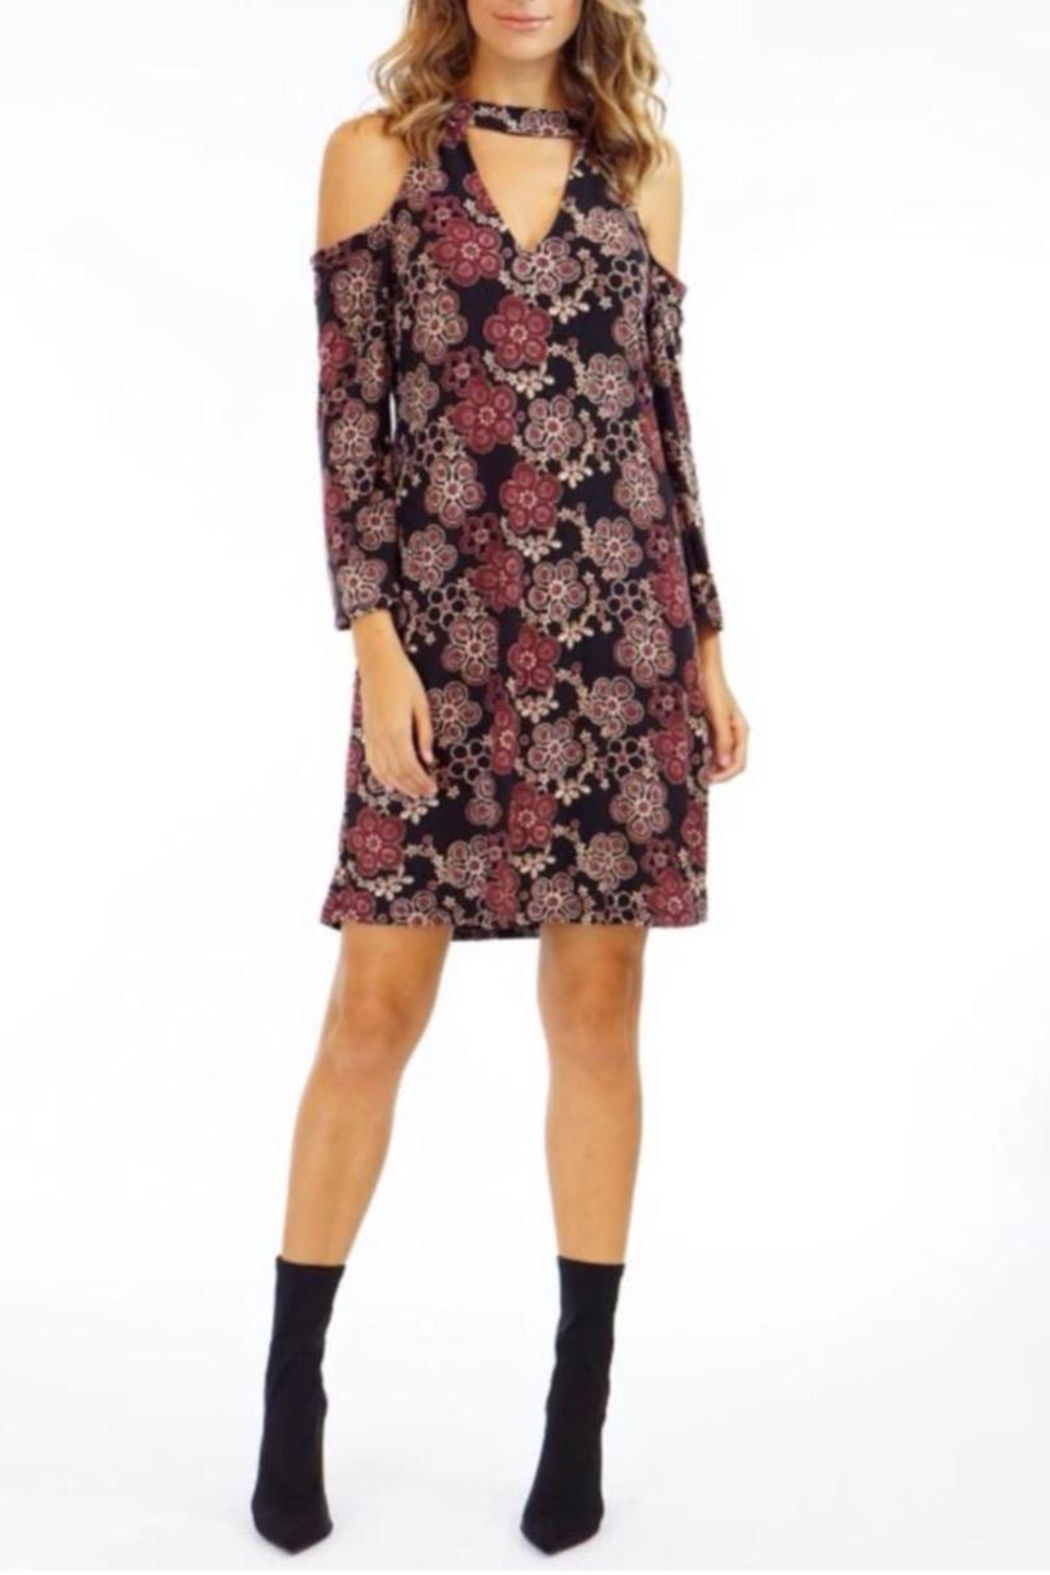 Veronica M Rust Floral-Print Dress - Main Image